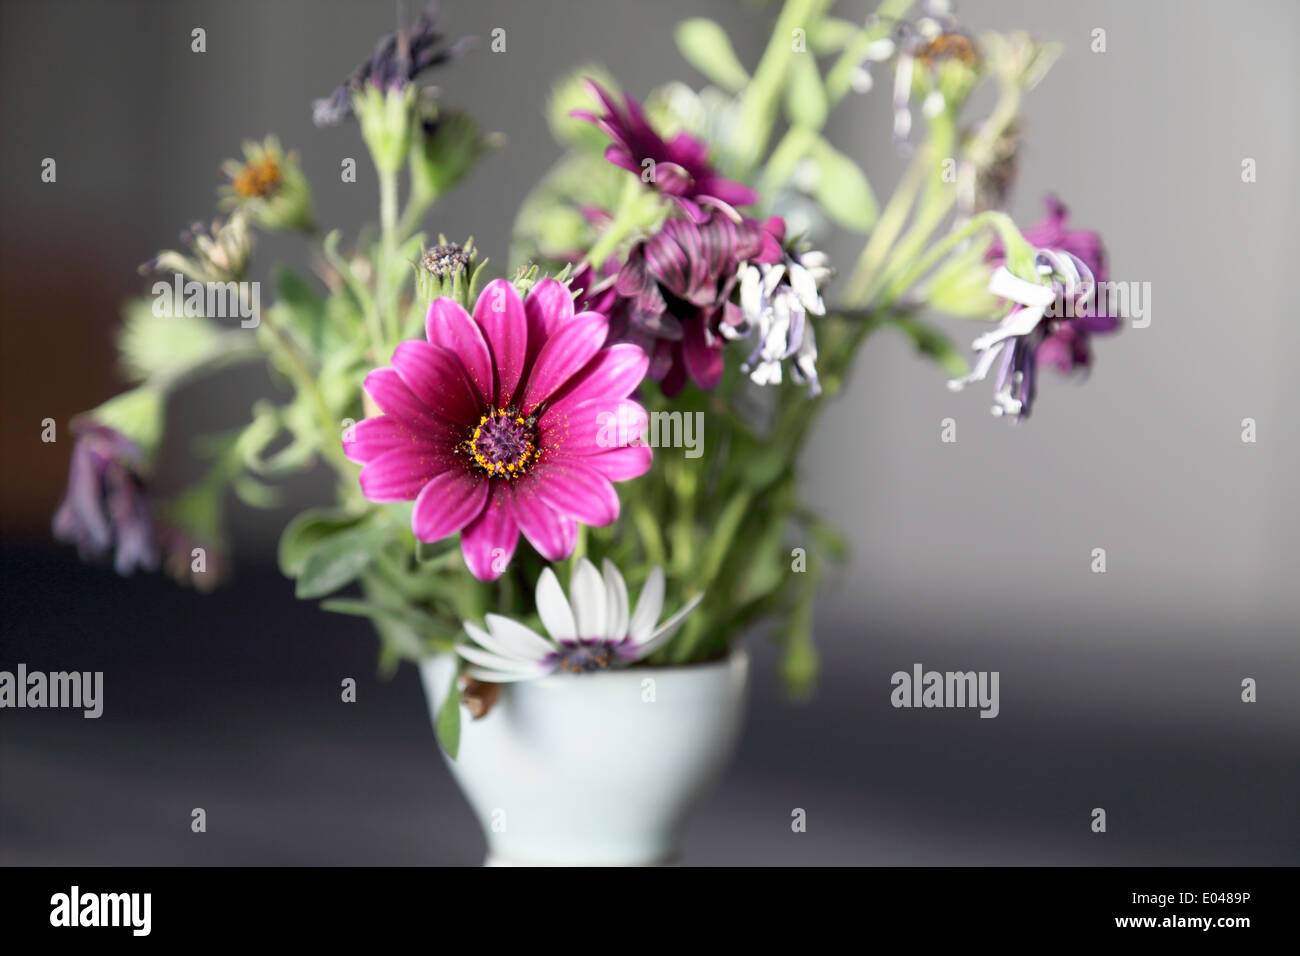 Fuchsia Colored and Withered Flower - Stock Image